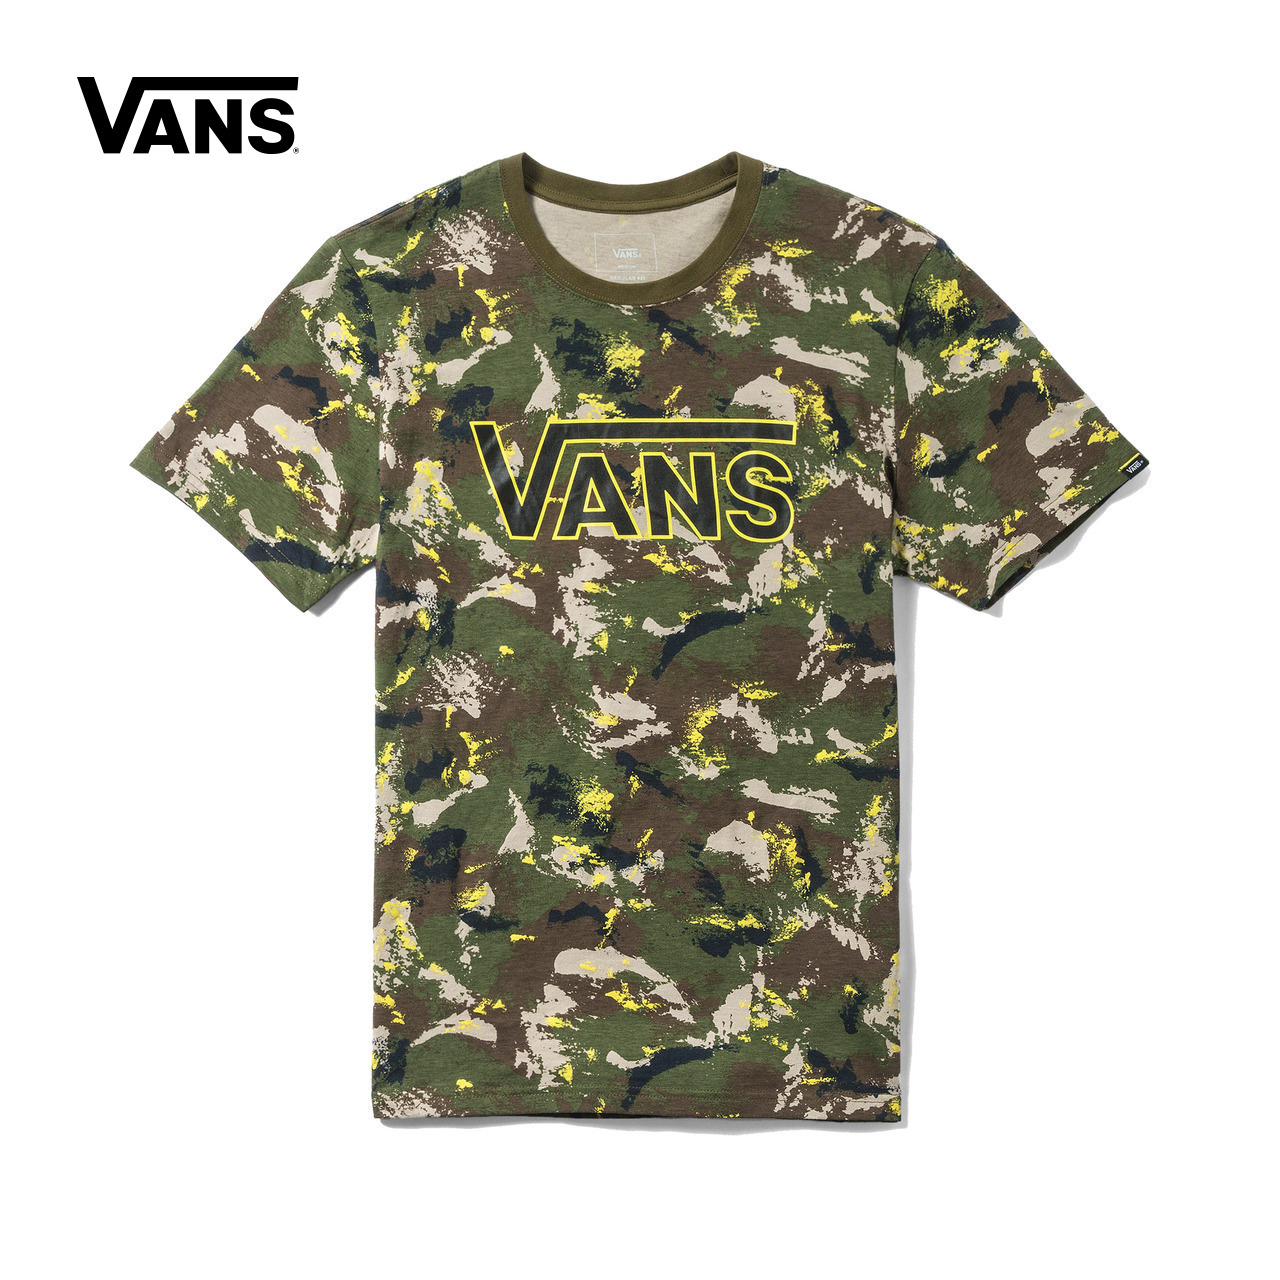 Original New Arrival Vans Men's Printed T Shirt O-neck Short Sleeve Cotton Skateboarding Tops Tees Sport Outdoor VN0A3DCVPTM stylish round neck printed short sleeve men s t shirt